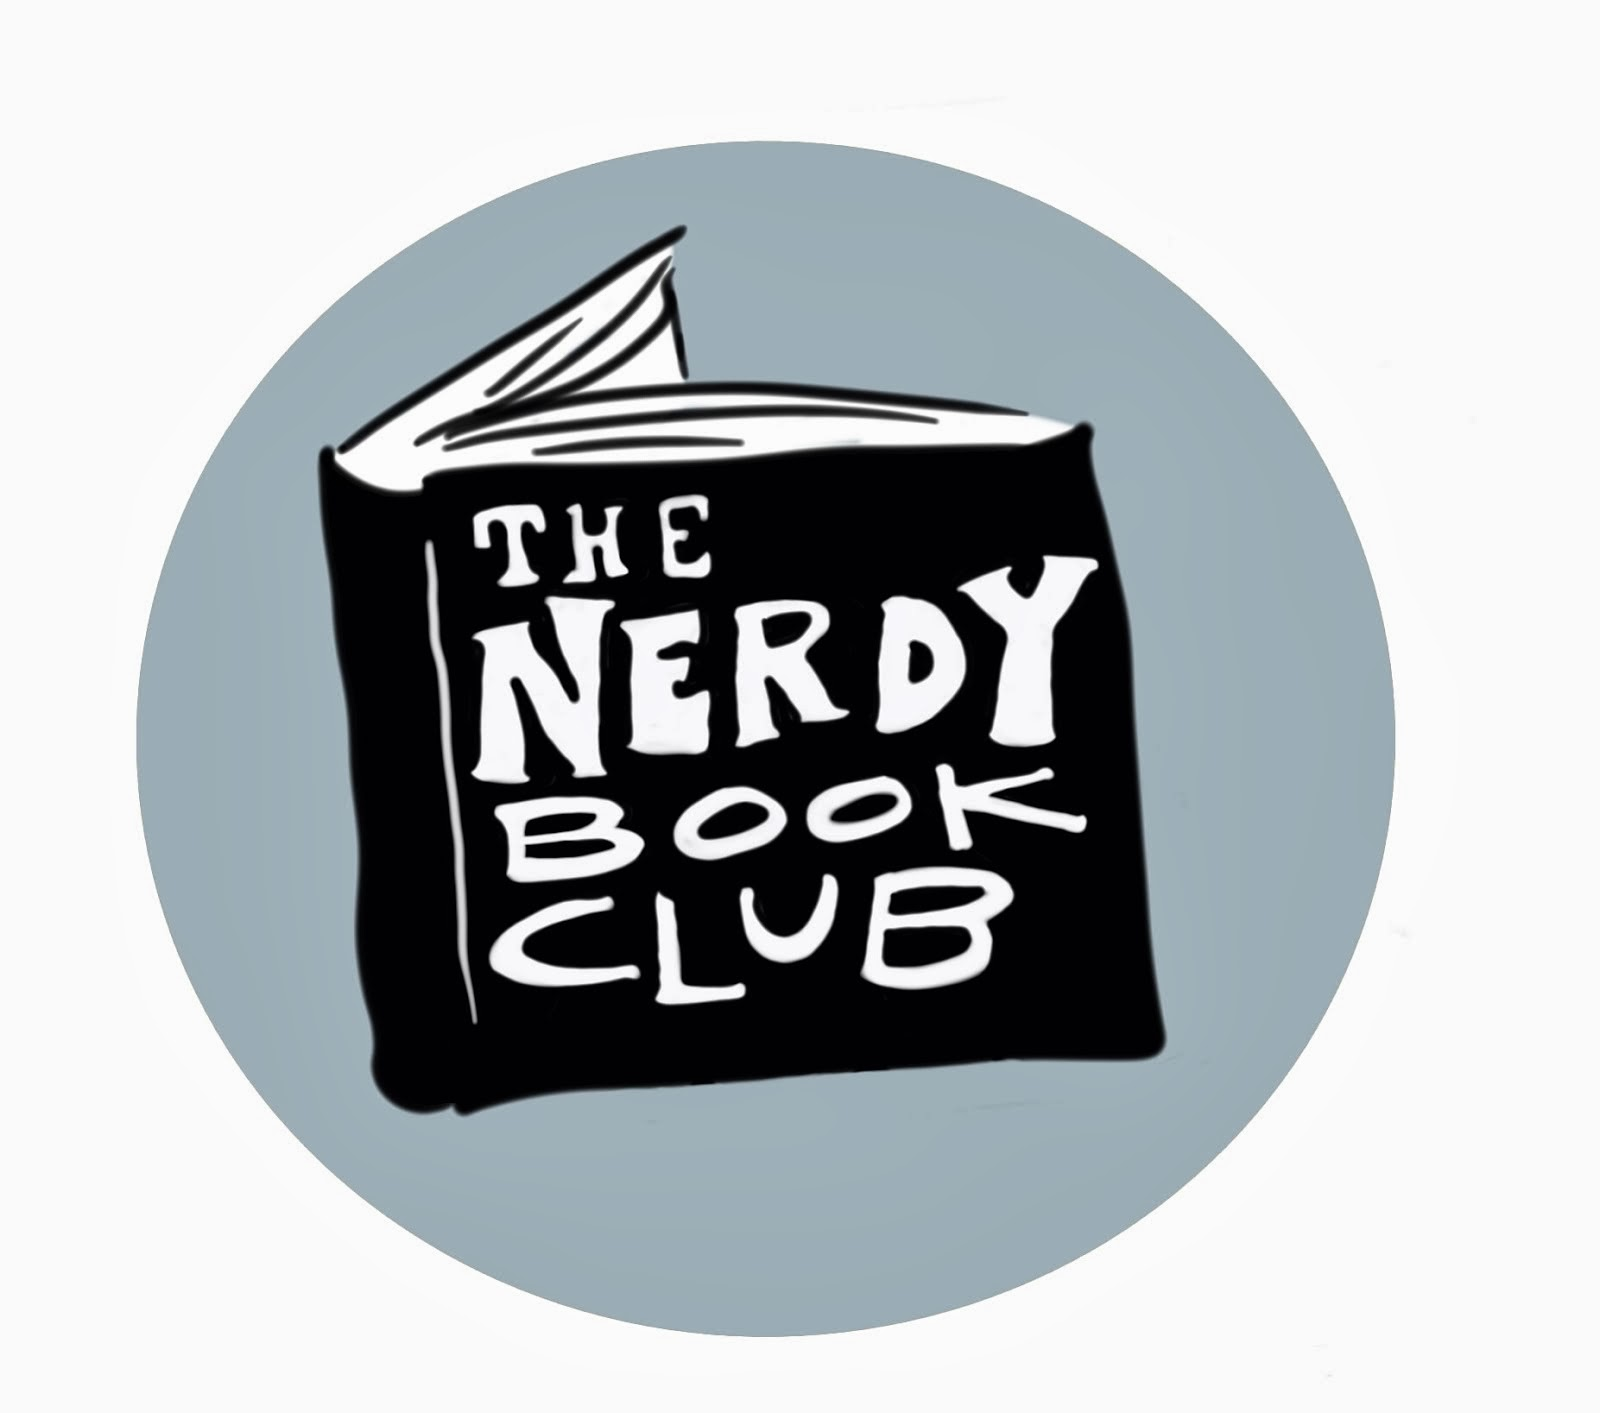 #nerdybookclub